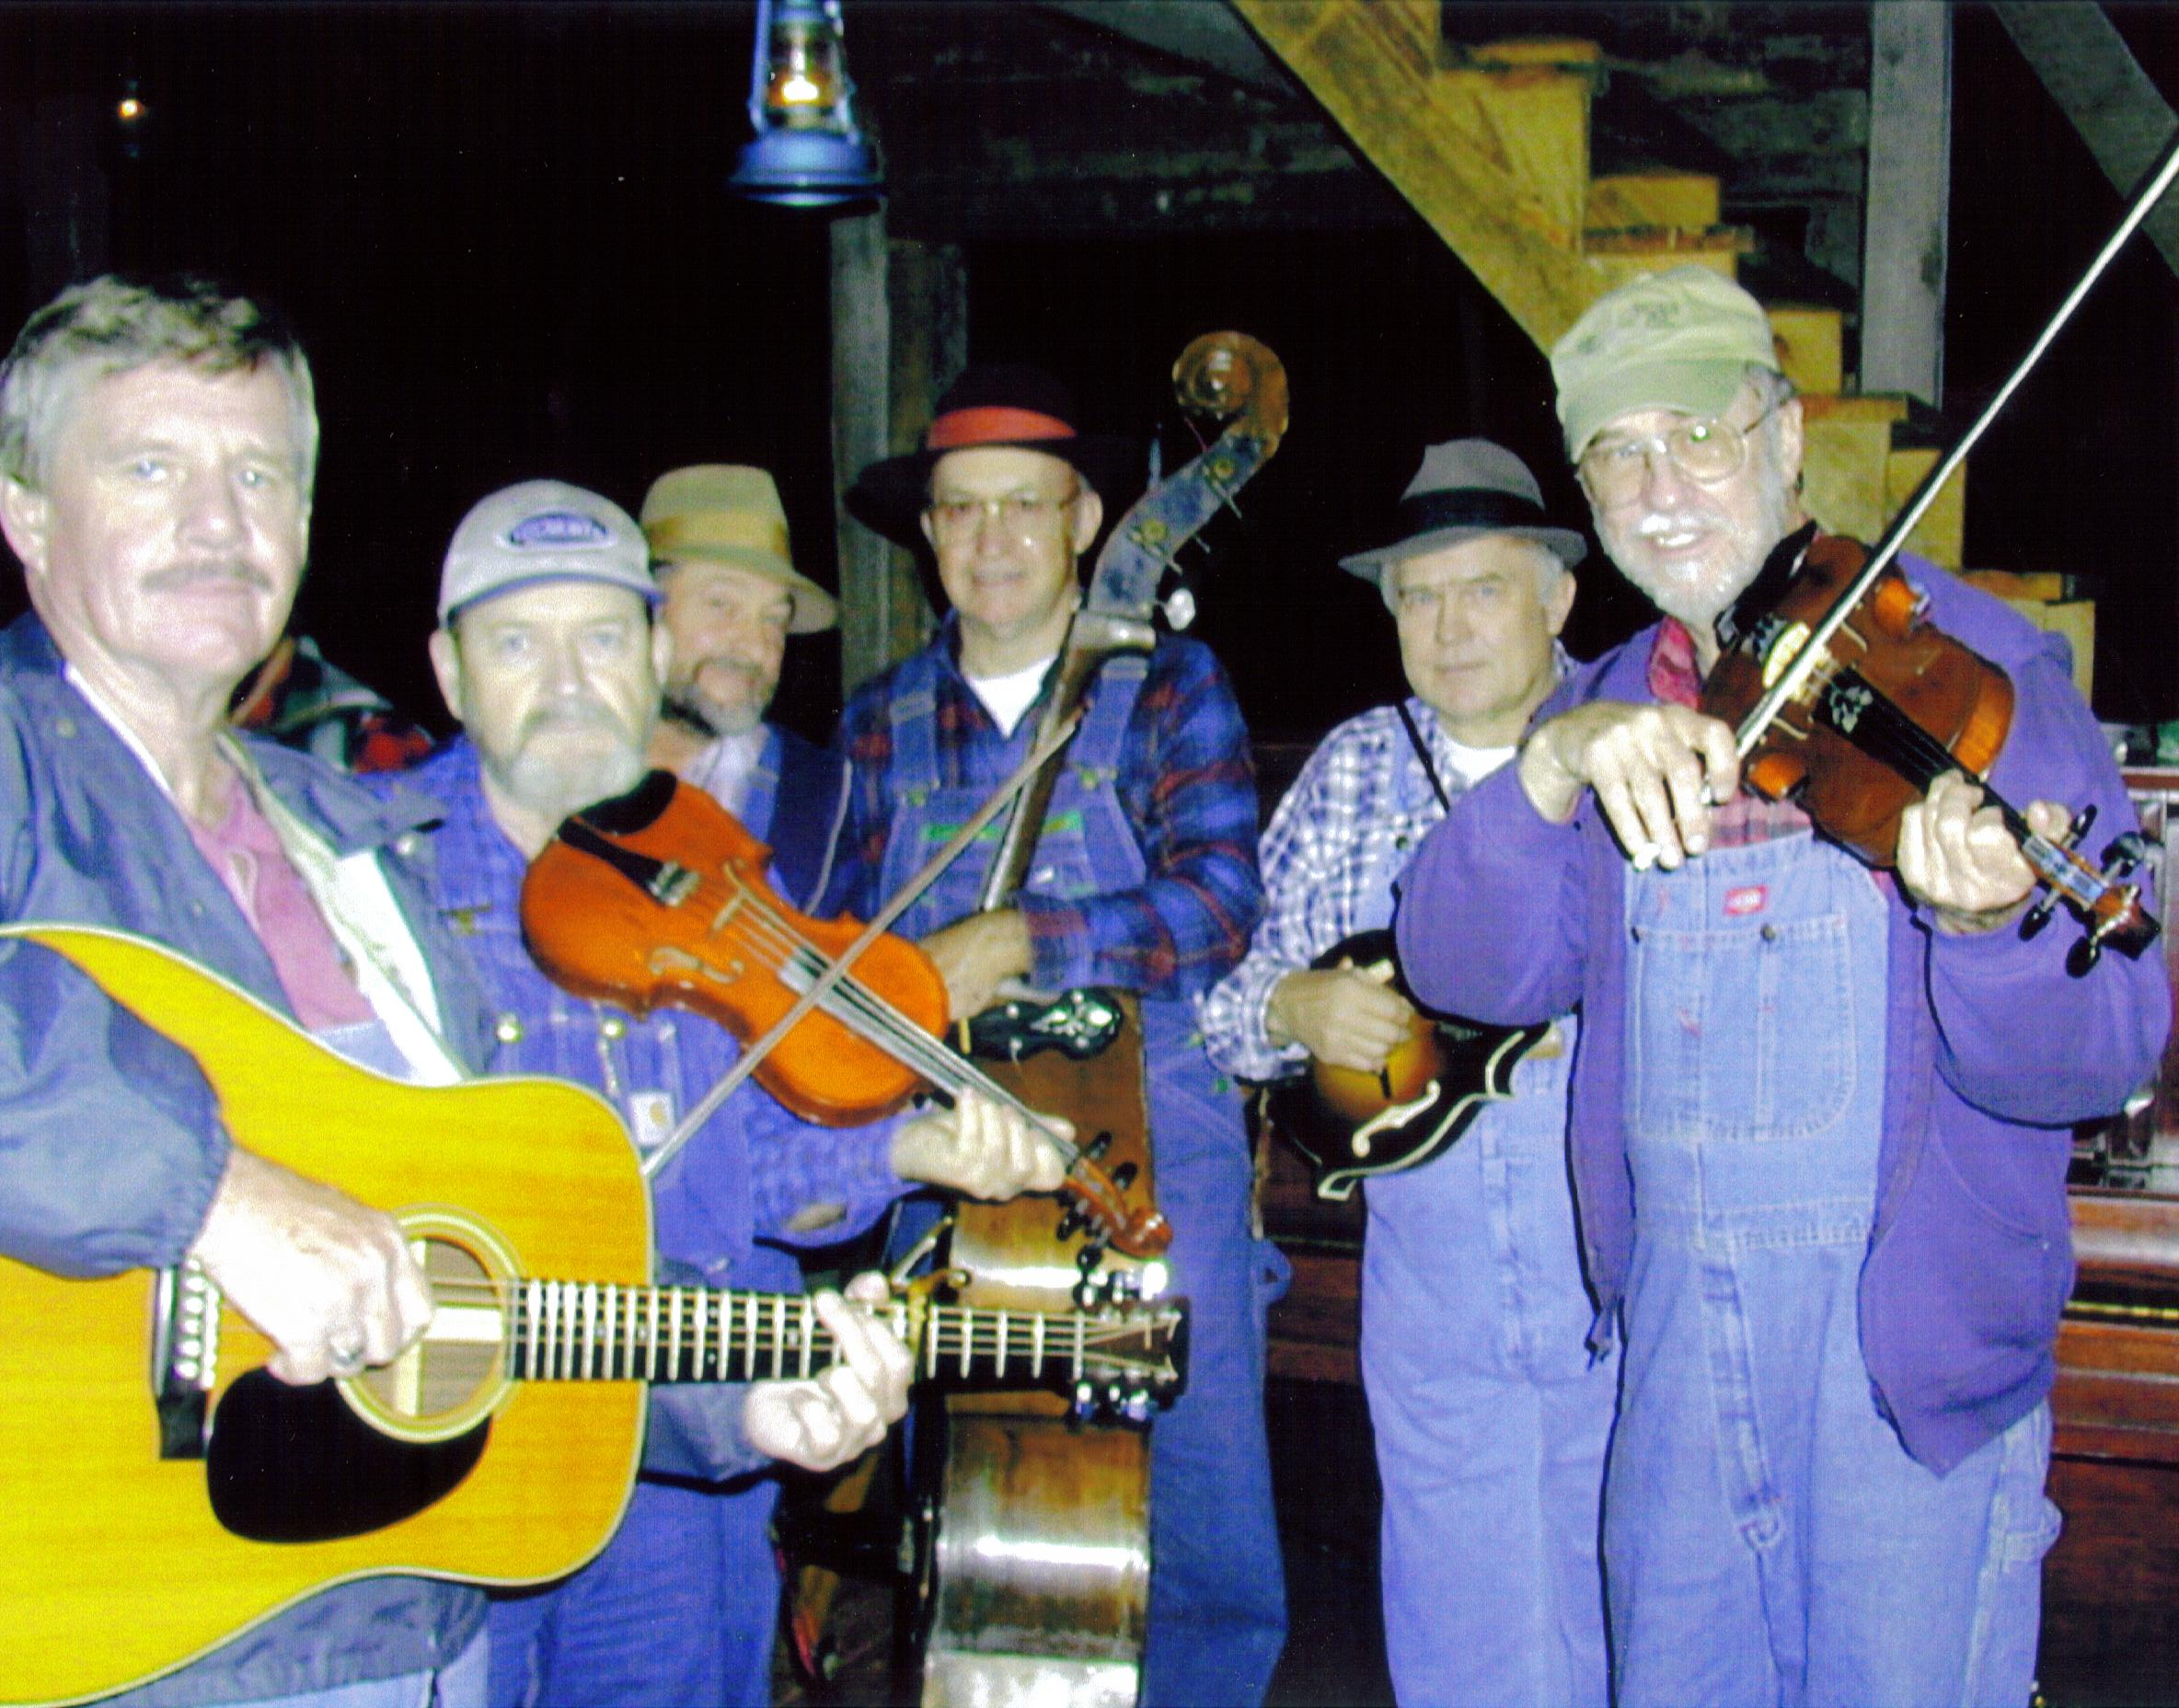 The Kentucky Clodhoppers in their prime: L. C. Johnson, Billy Don Stamper, Earl Thomas, Jr., Glyndon Watson, Donnie Rogers, John Harrod. This was the favorite old time dance band at Meadowgreen Music Hall at Clay City, KY for many years.